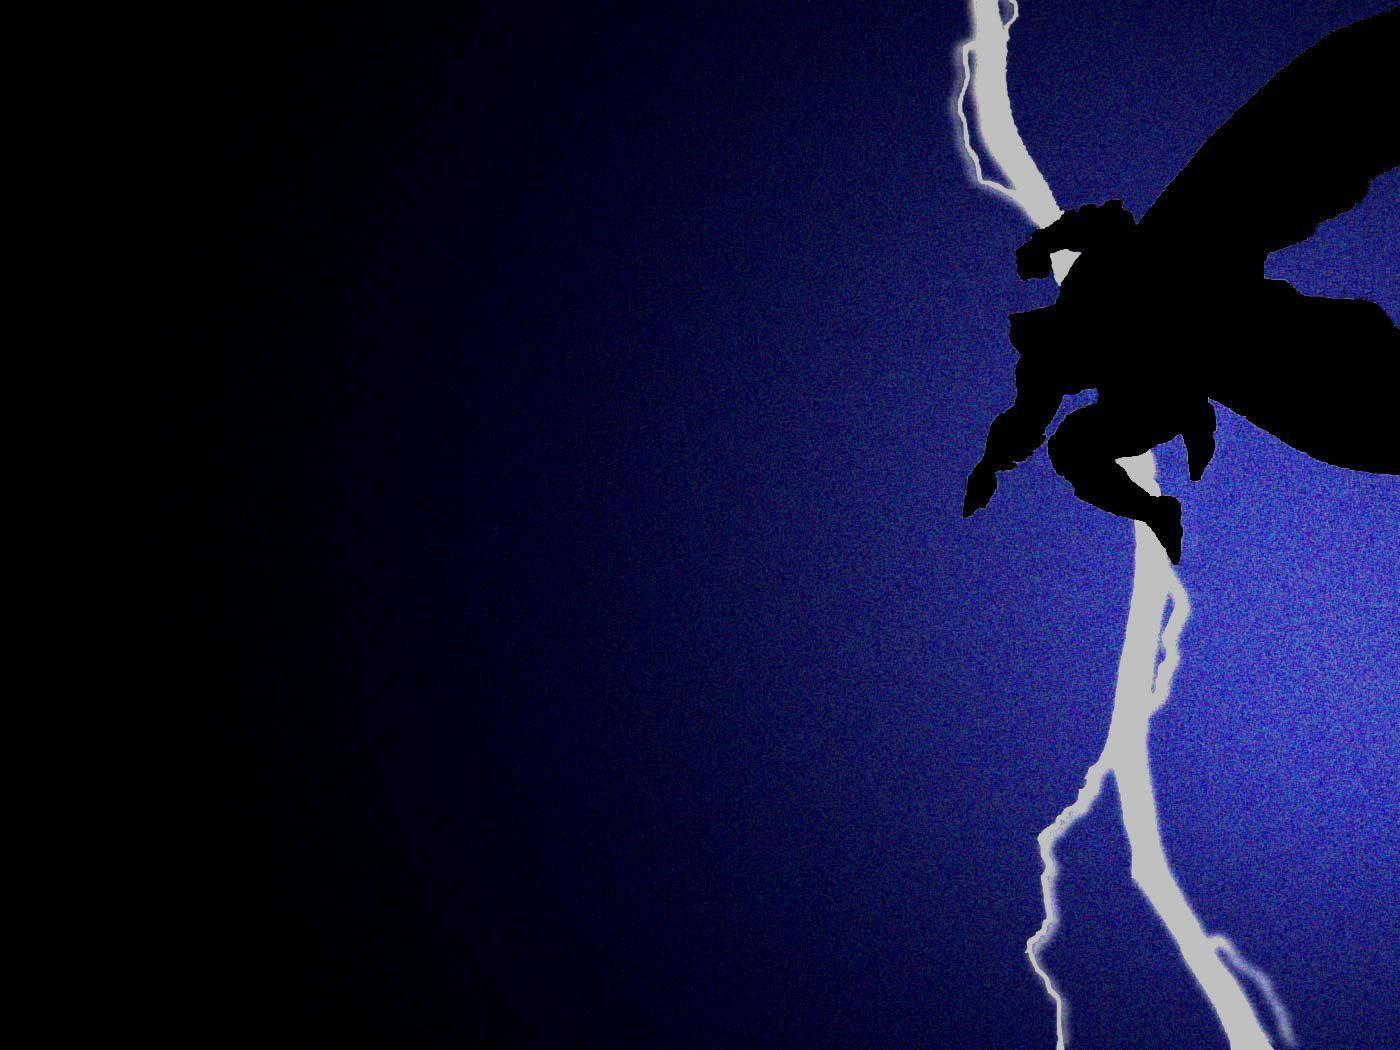 Frank Miller's - The Dark Knight Returns - Wallpaper - one of my ...